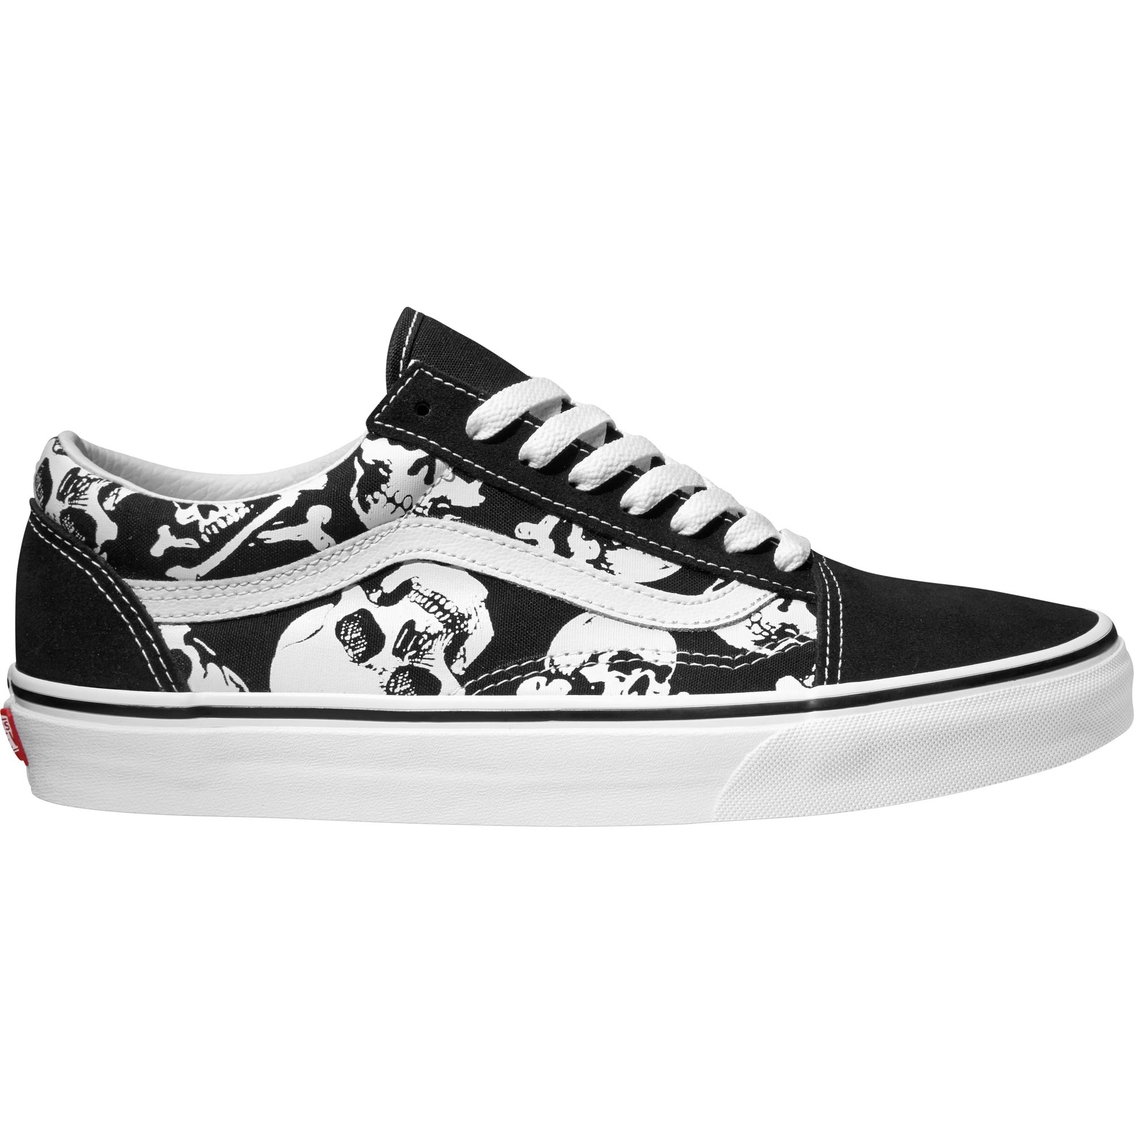 75a9fefc2a Vans Old Skool Skulls Lifestyle Shoes